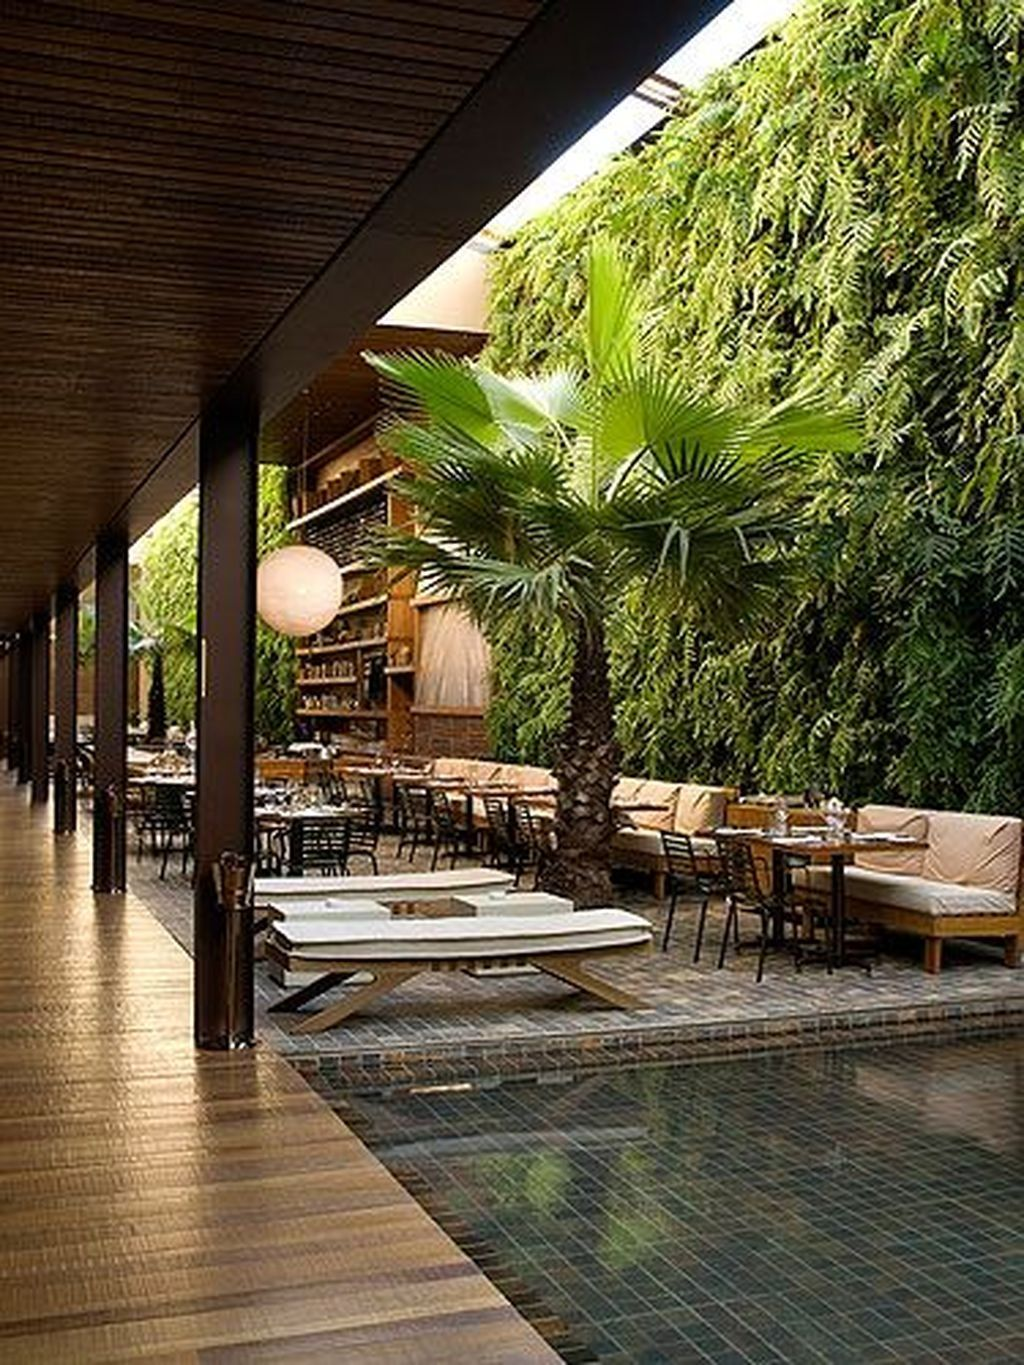 42 Stunning Exterior Home Designs: 38 Stunning Living Wall Decor For Indoor And Outdoor